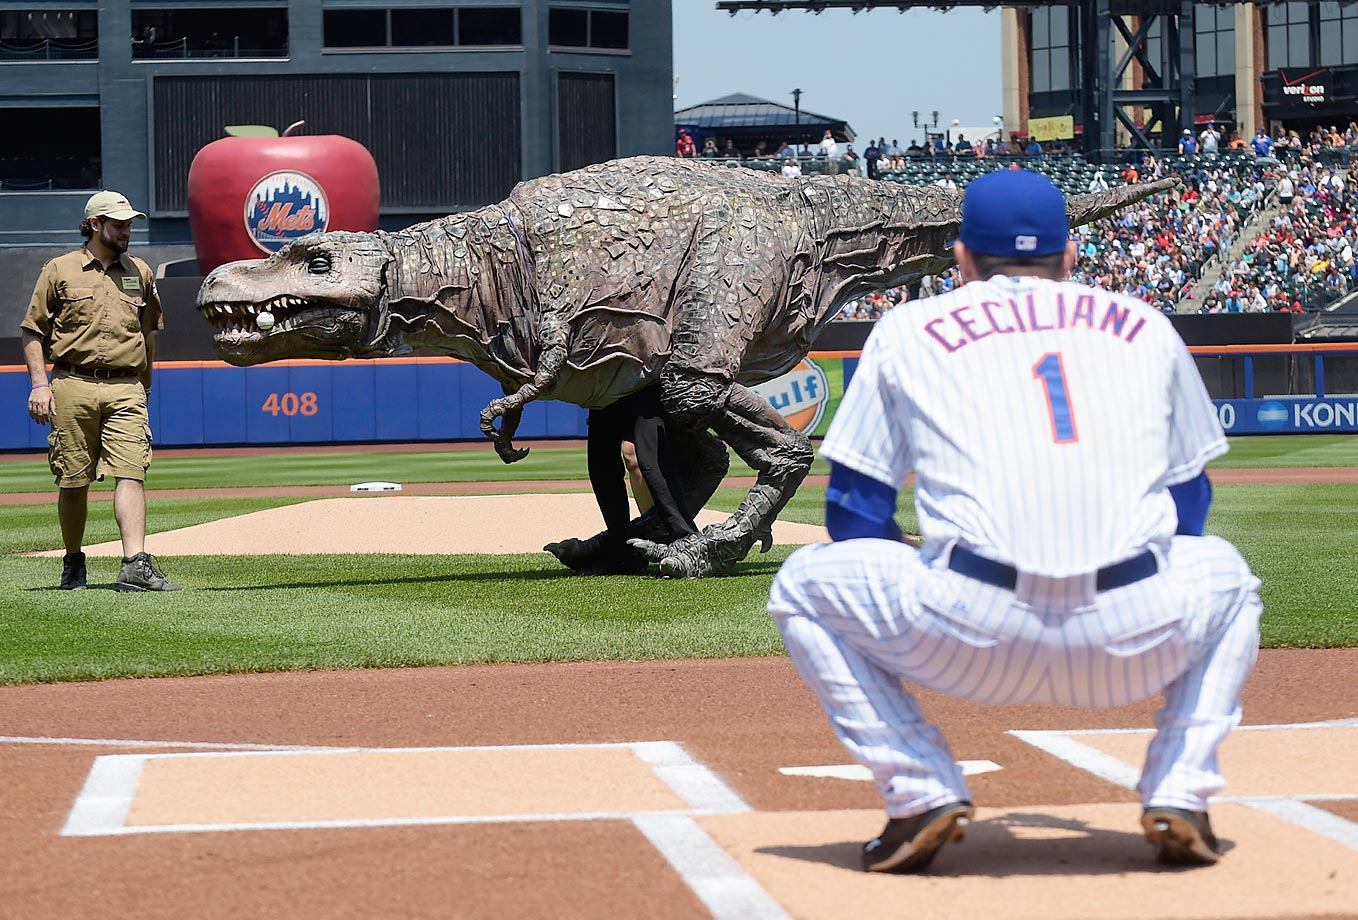 A Tyrannosaurus Rex from Field Station: Dinosaurs throws out the first pitch at the game against the Phillies at Citi Field,